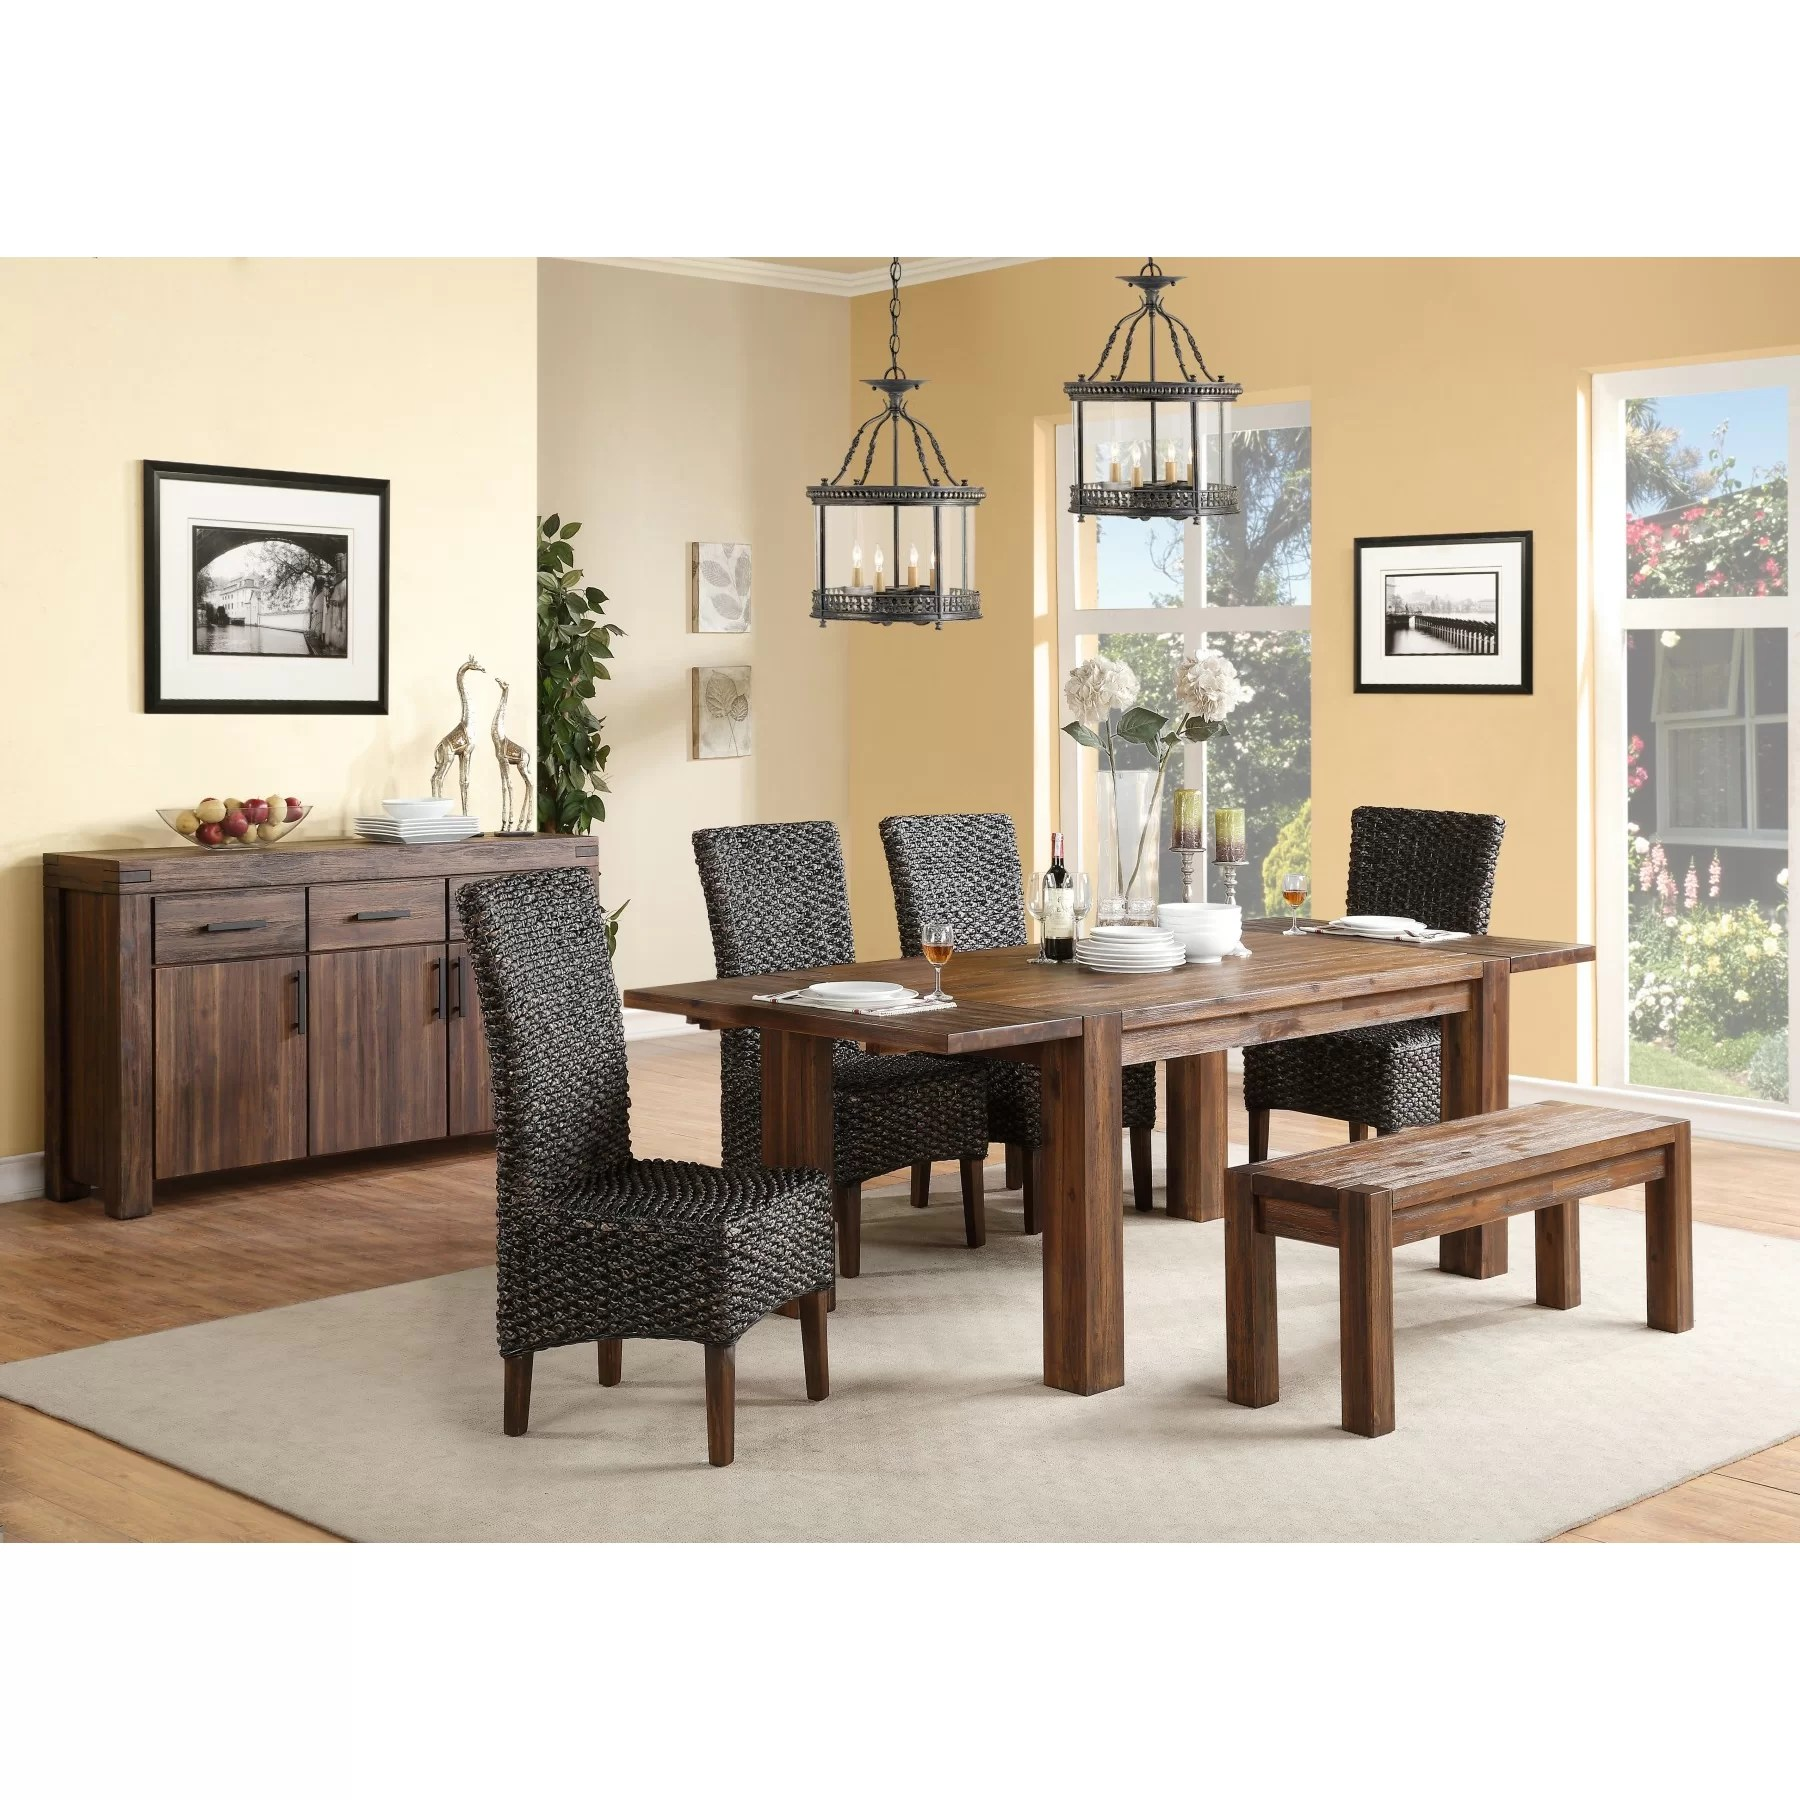 Exceptional Chateau Extension Dining Table Chestnut Round Dining Room Tables